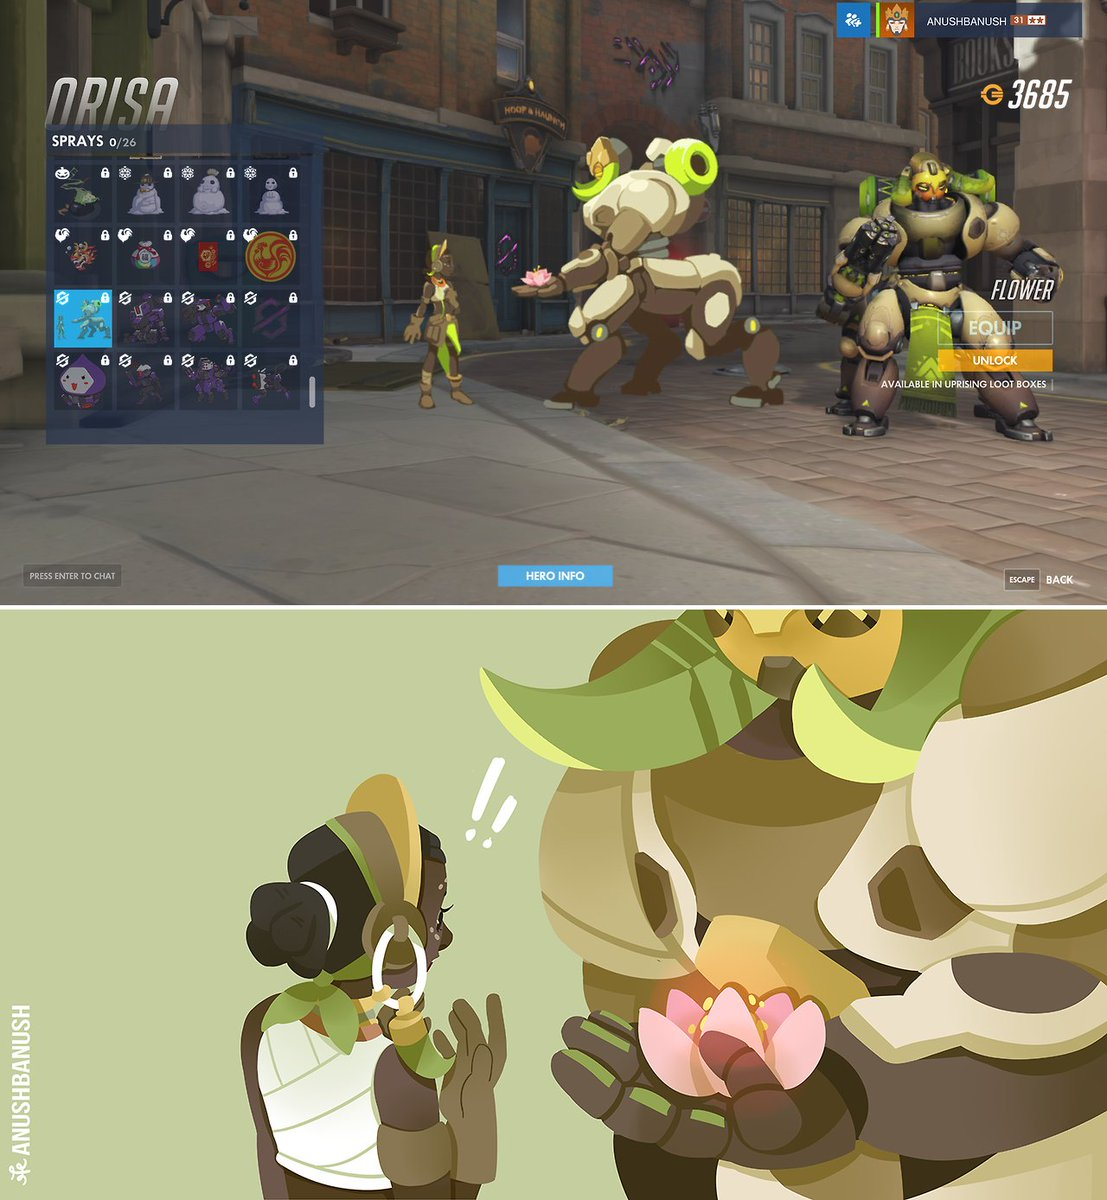 It's the thought that counts  #Overwatch @PlayOverwatch<br>http://pic.twitter.com/pxW9HZPOTa